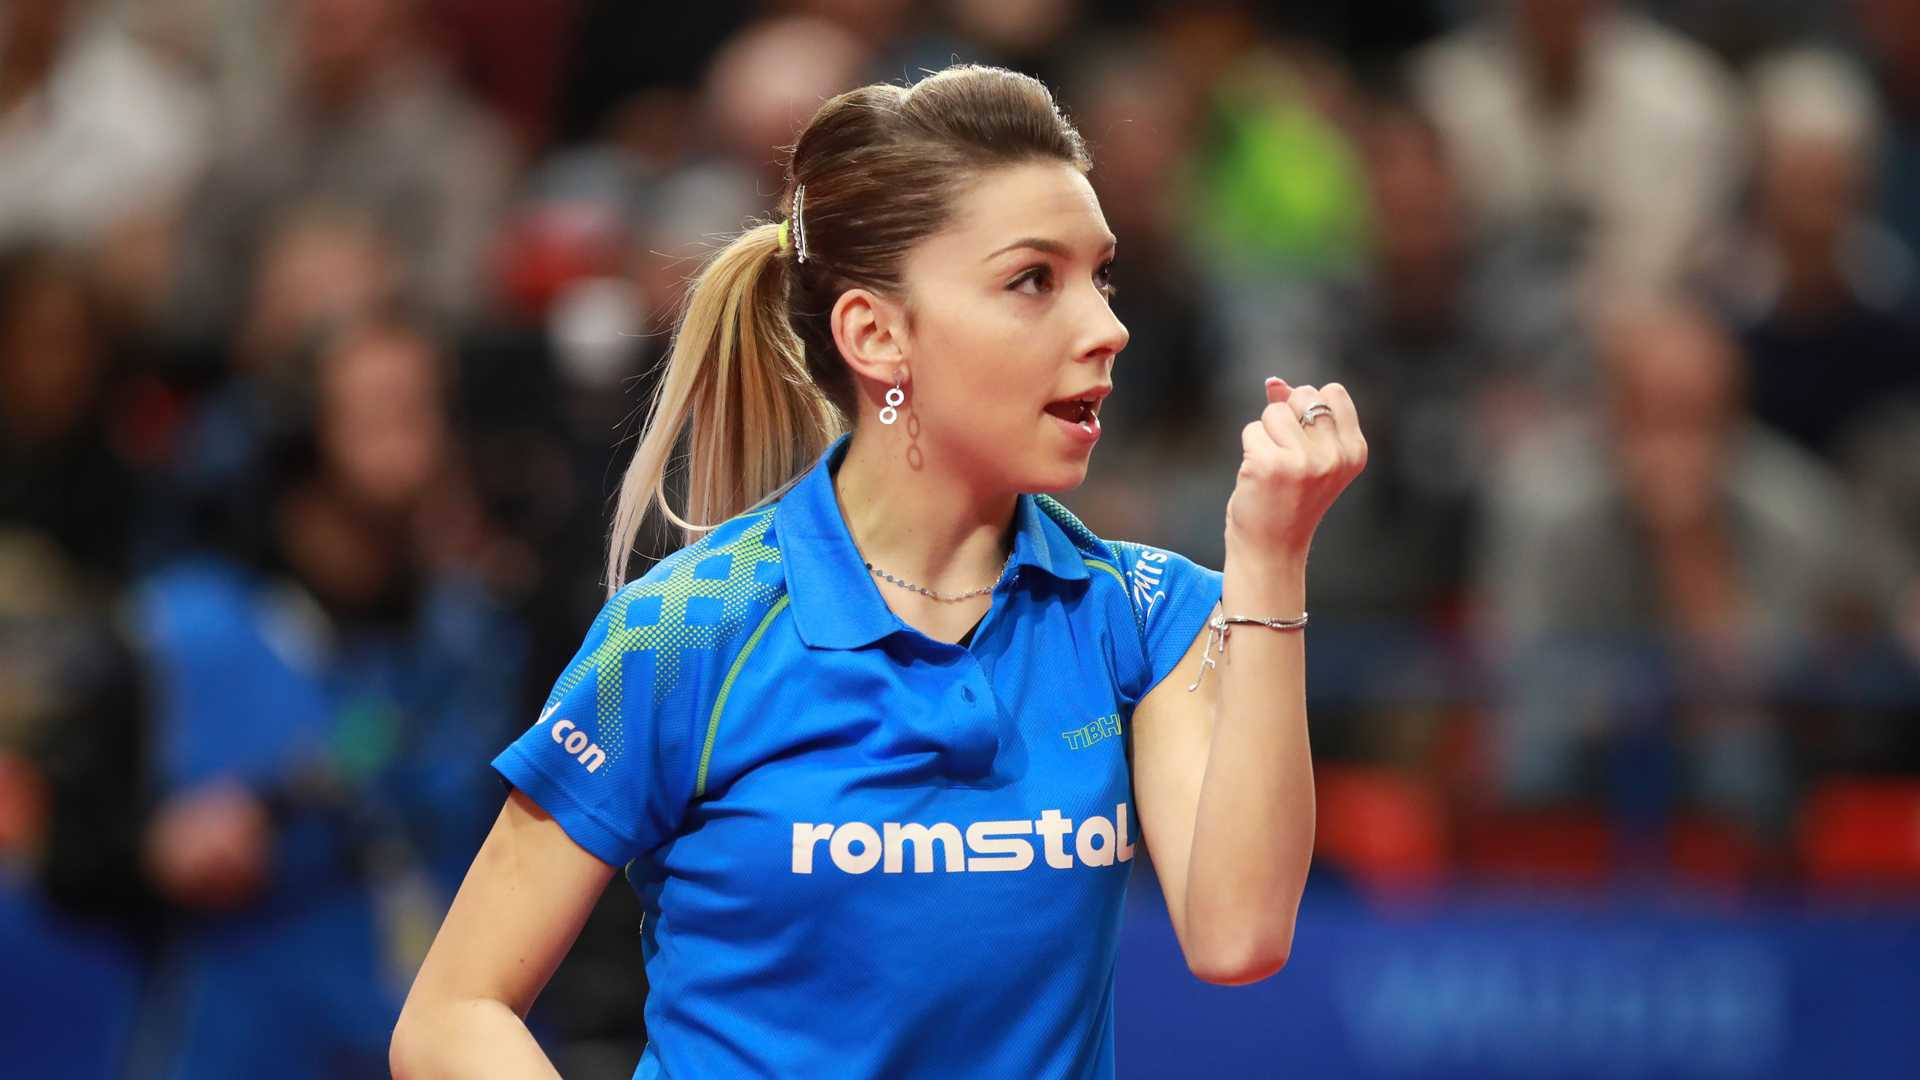 Szocs kicks off in group stages of ITTF Women's World Cup